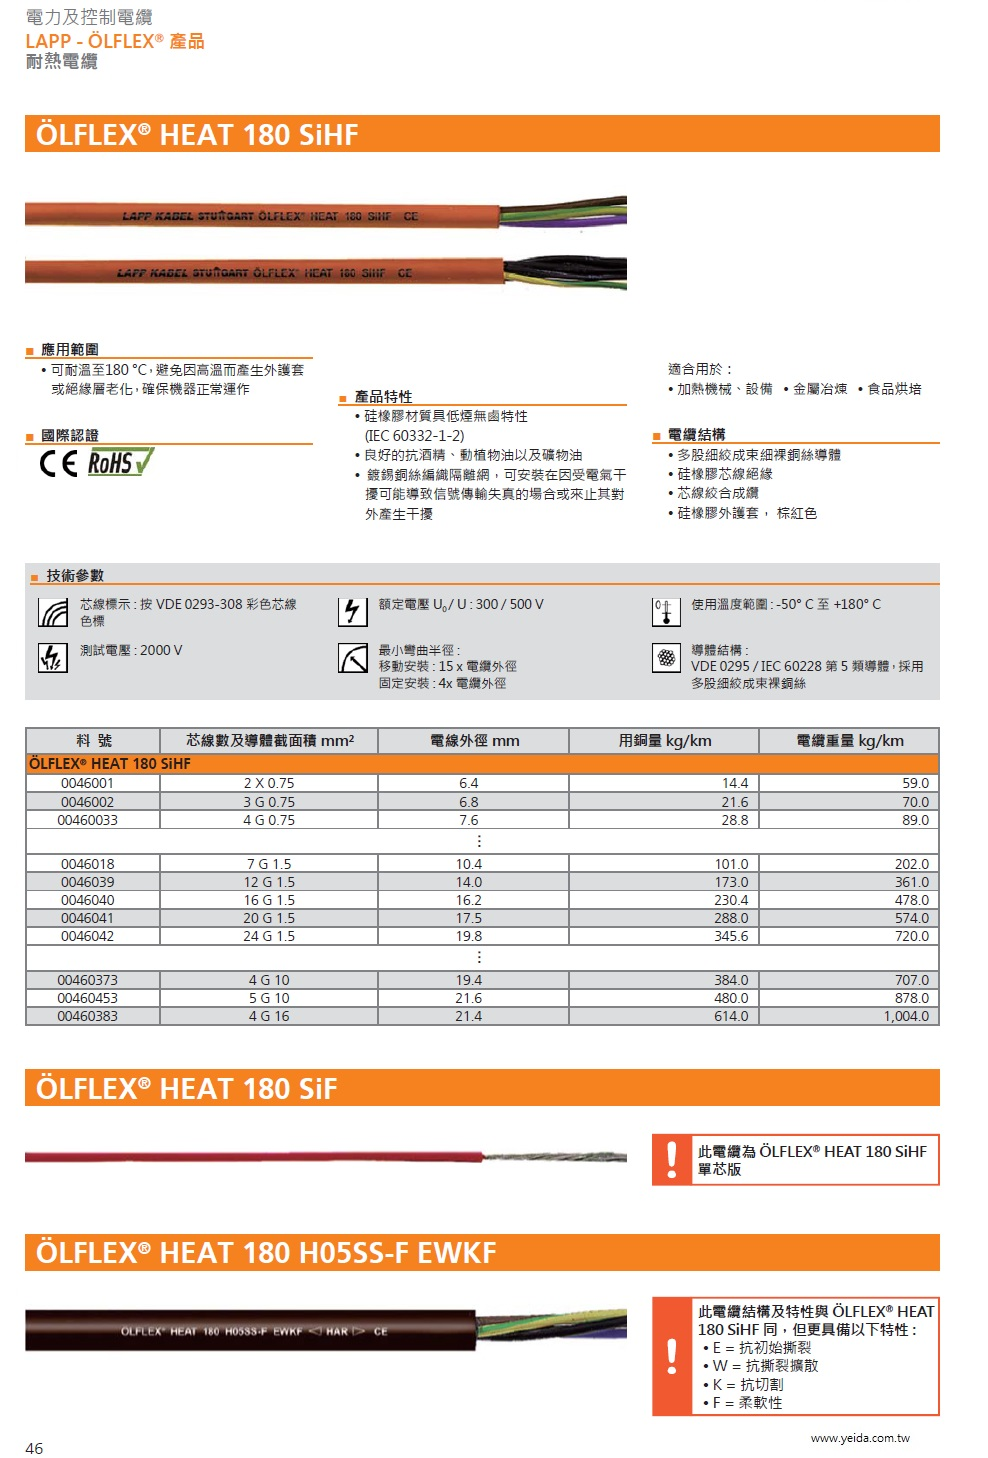 LAPP OLFLEX HEAT 180 SiHF High Temperature Silicone Control Cable(低煙無毒)產品圖